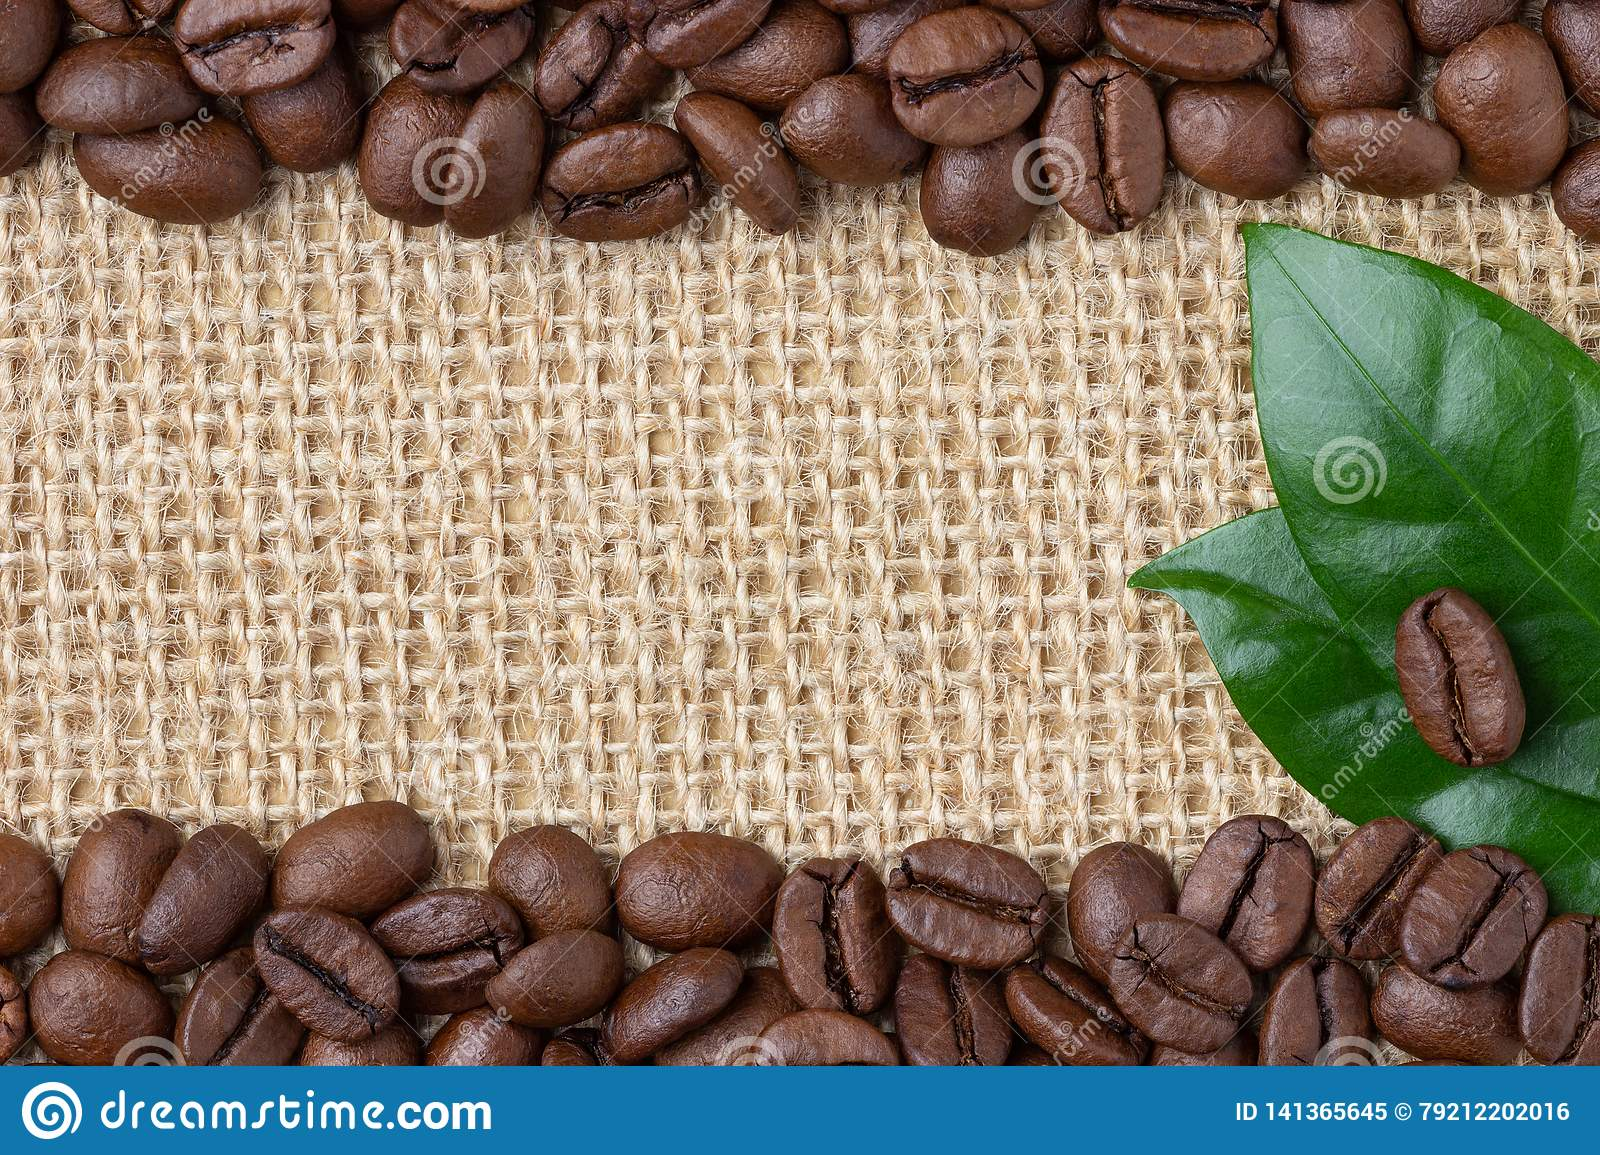 Coffee Border. Beans and leaf over burlap background.